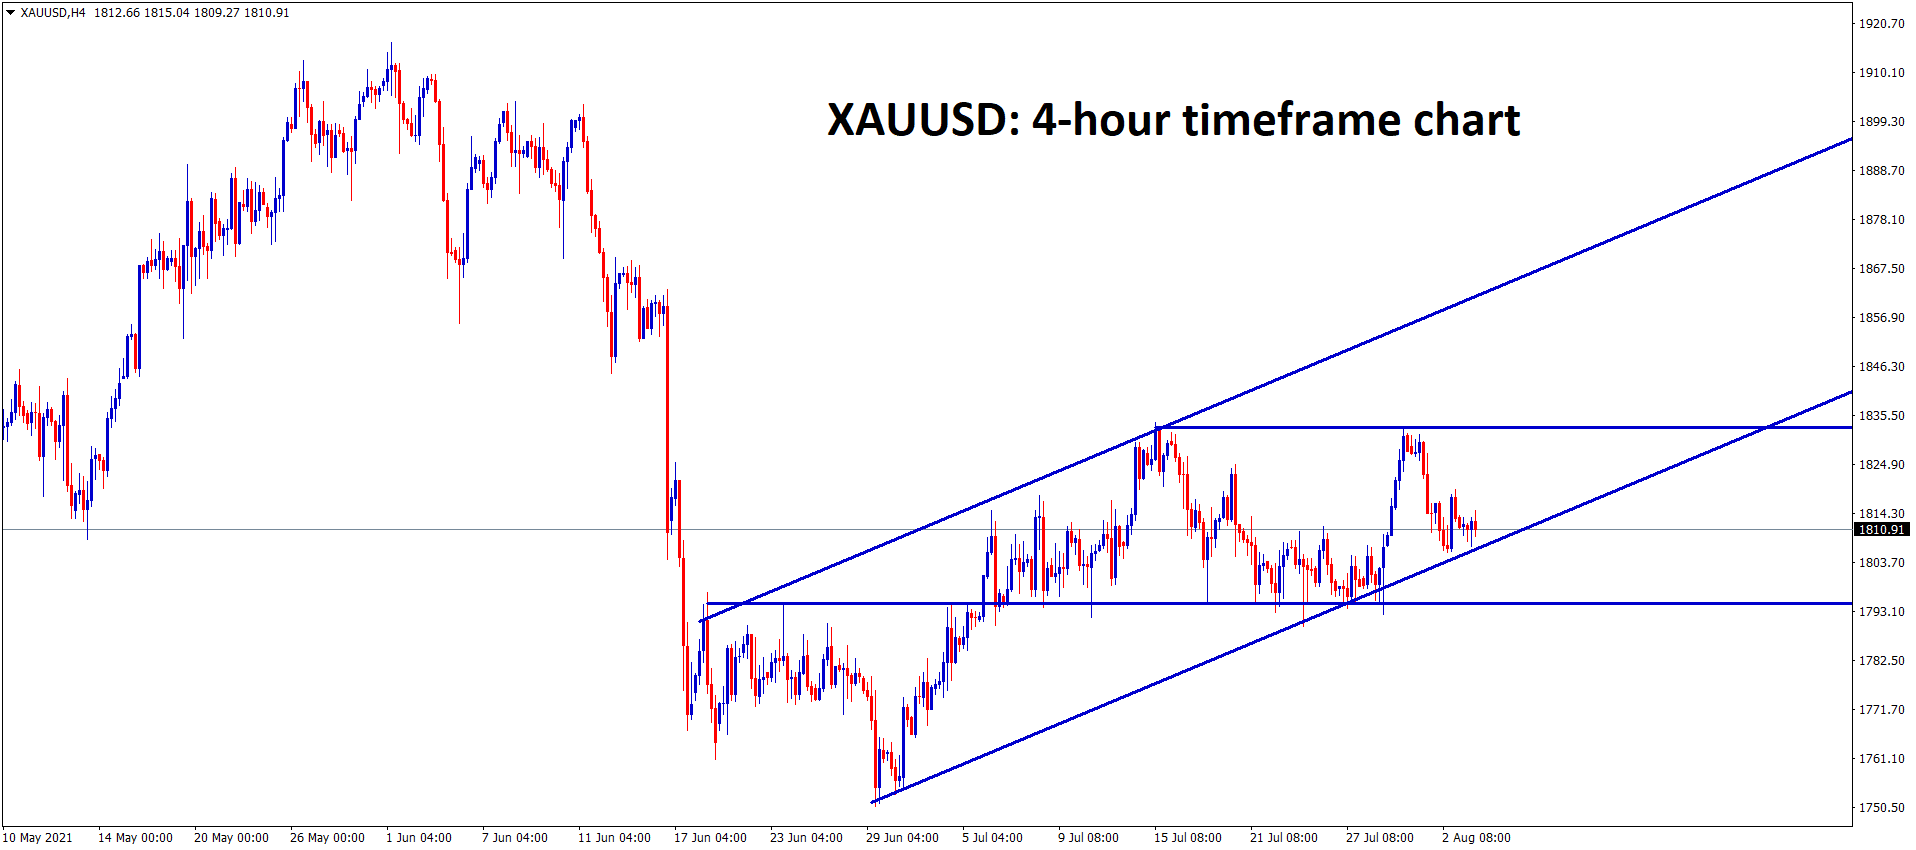 Gold is moving in an Uptrend line and the support and resistance areas